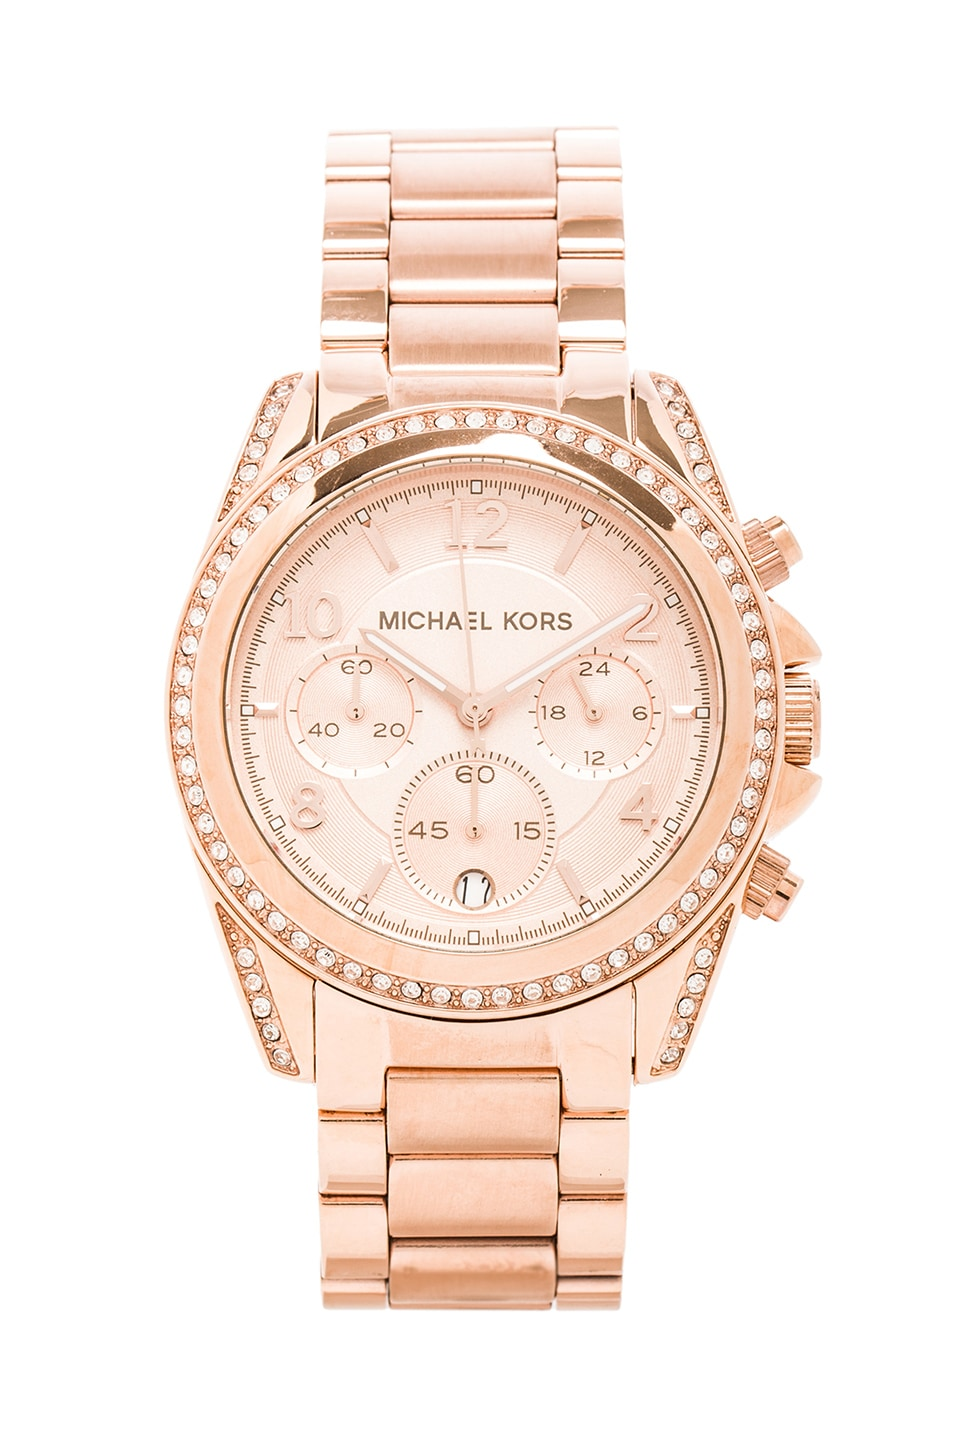 Michael Kors Blair Watch in Rosegold